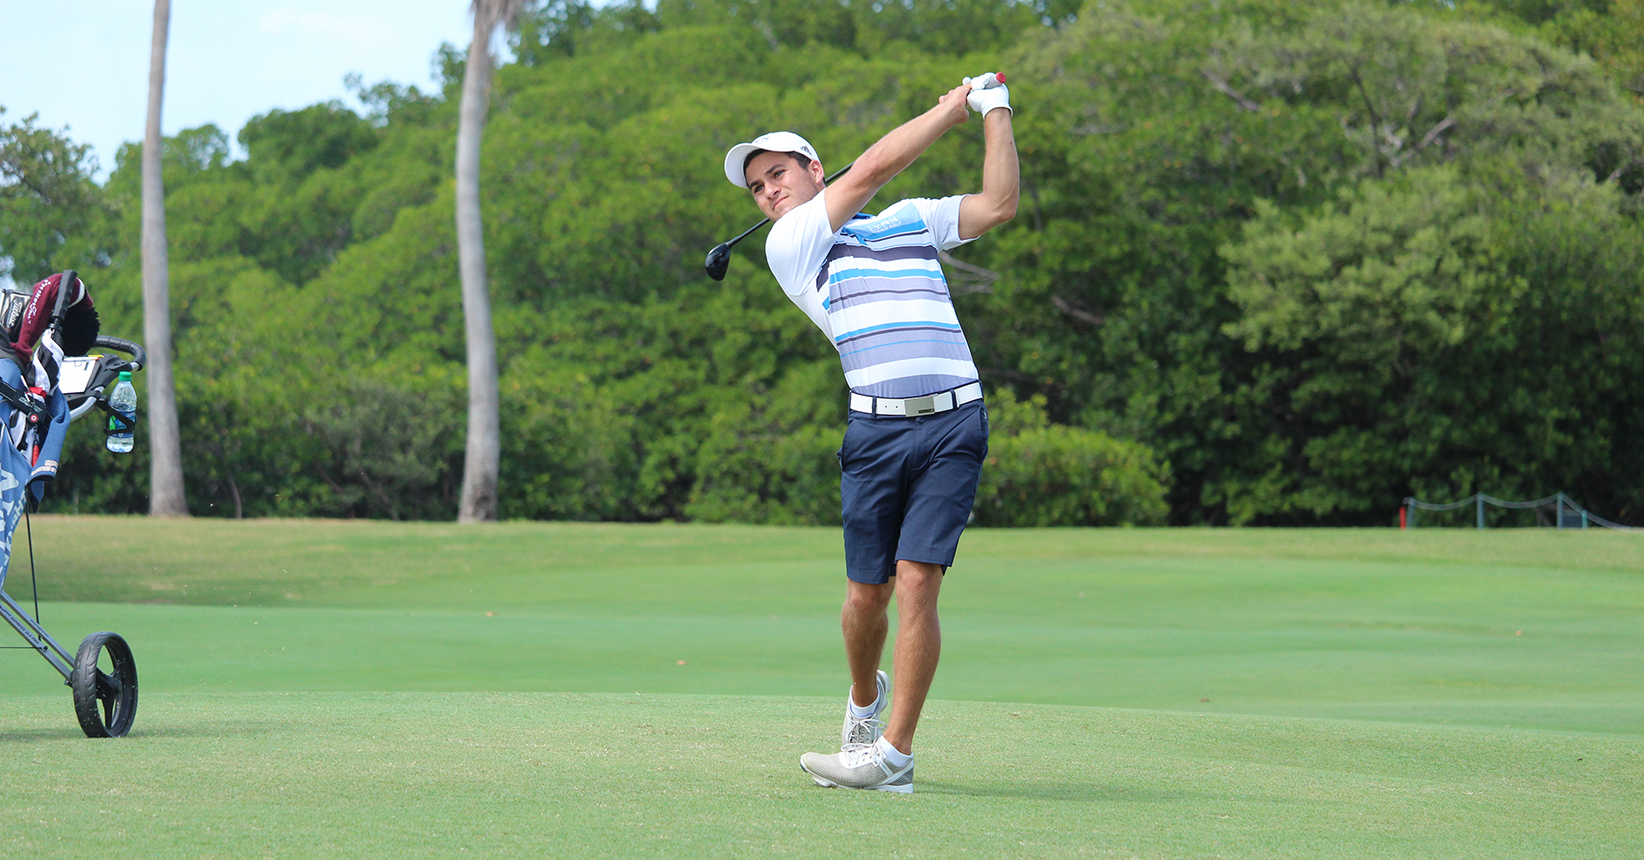 Men's Golf Shares Lead After Day 1 of SSC Championship